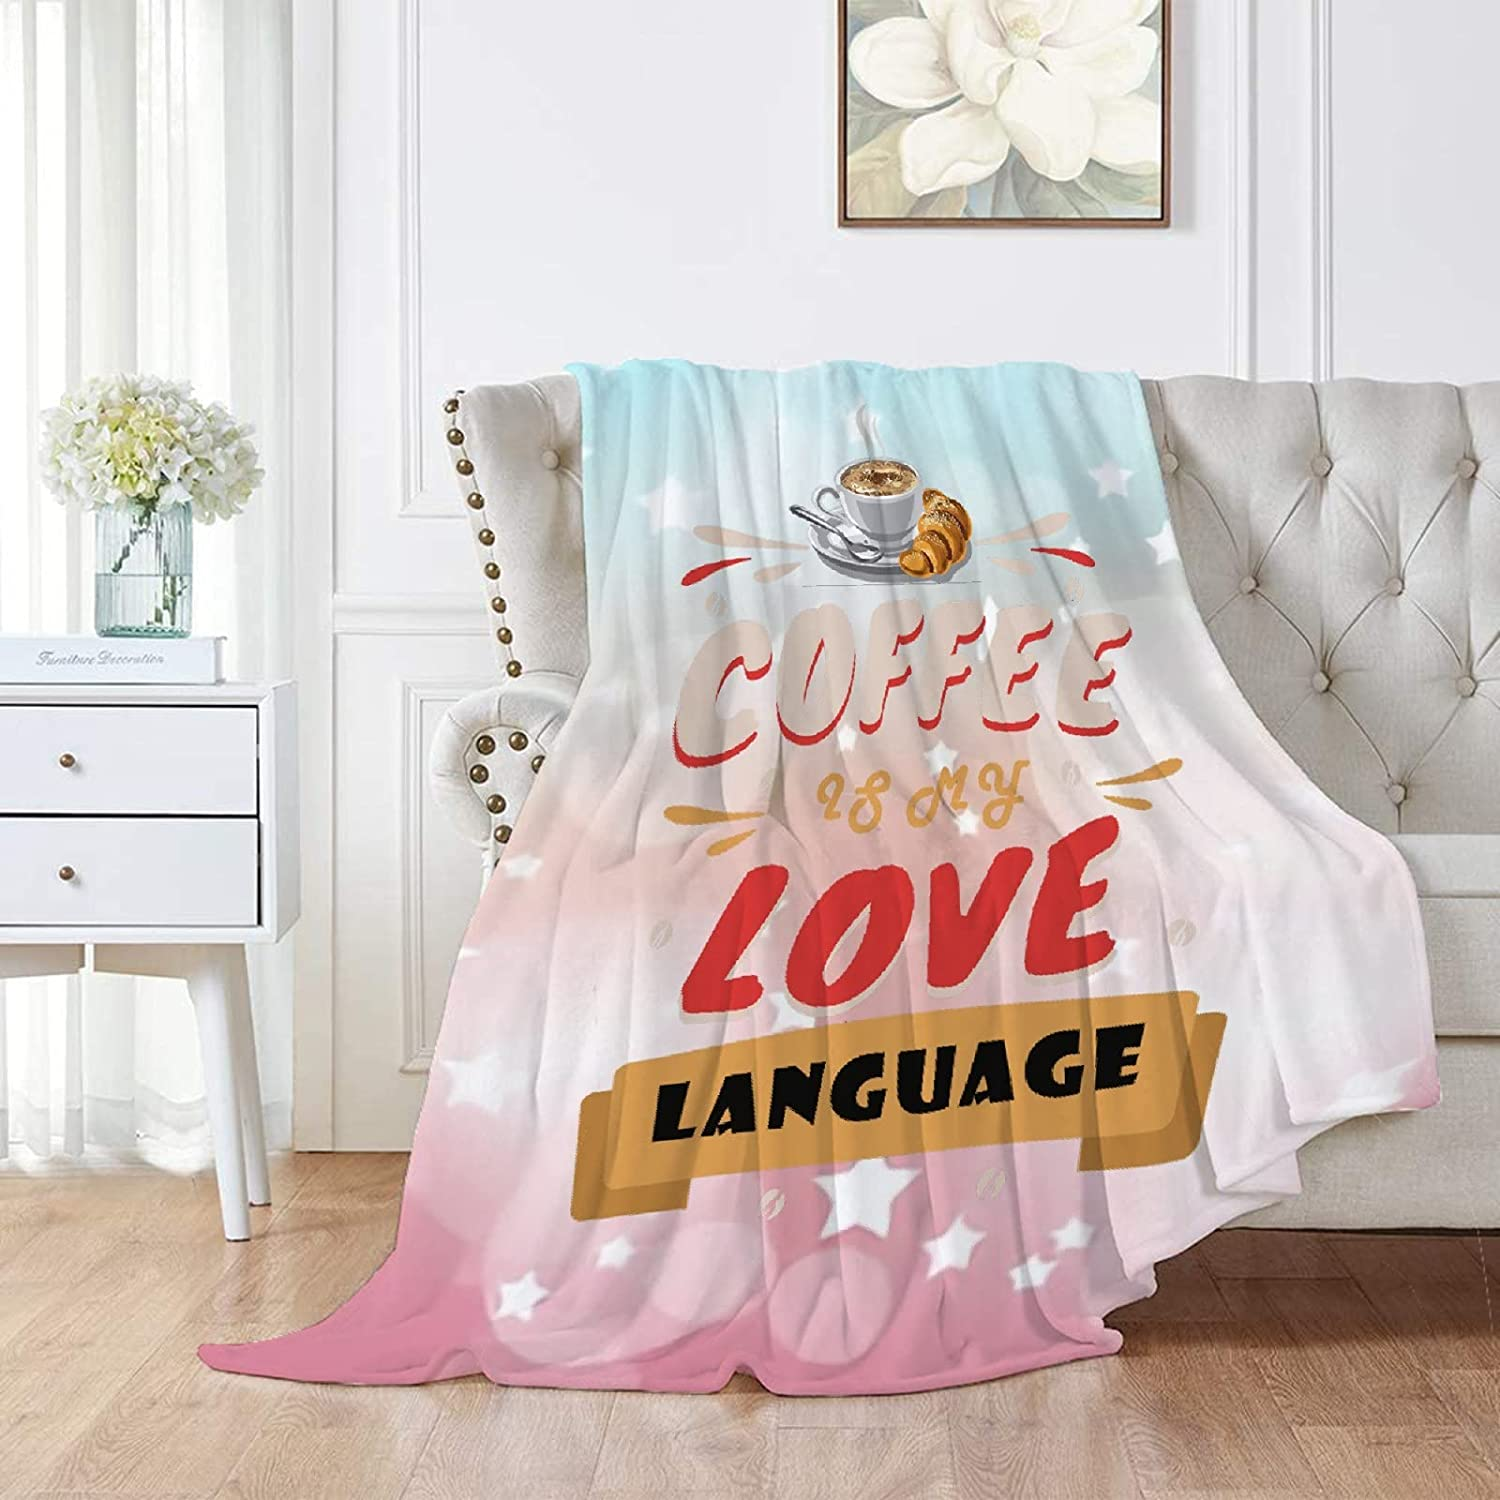 Subhuti Coffee is My Love Lightweight Throws Bl Language New Clearance SALE! Limited time! popularity Flannel